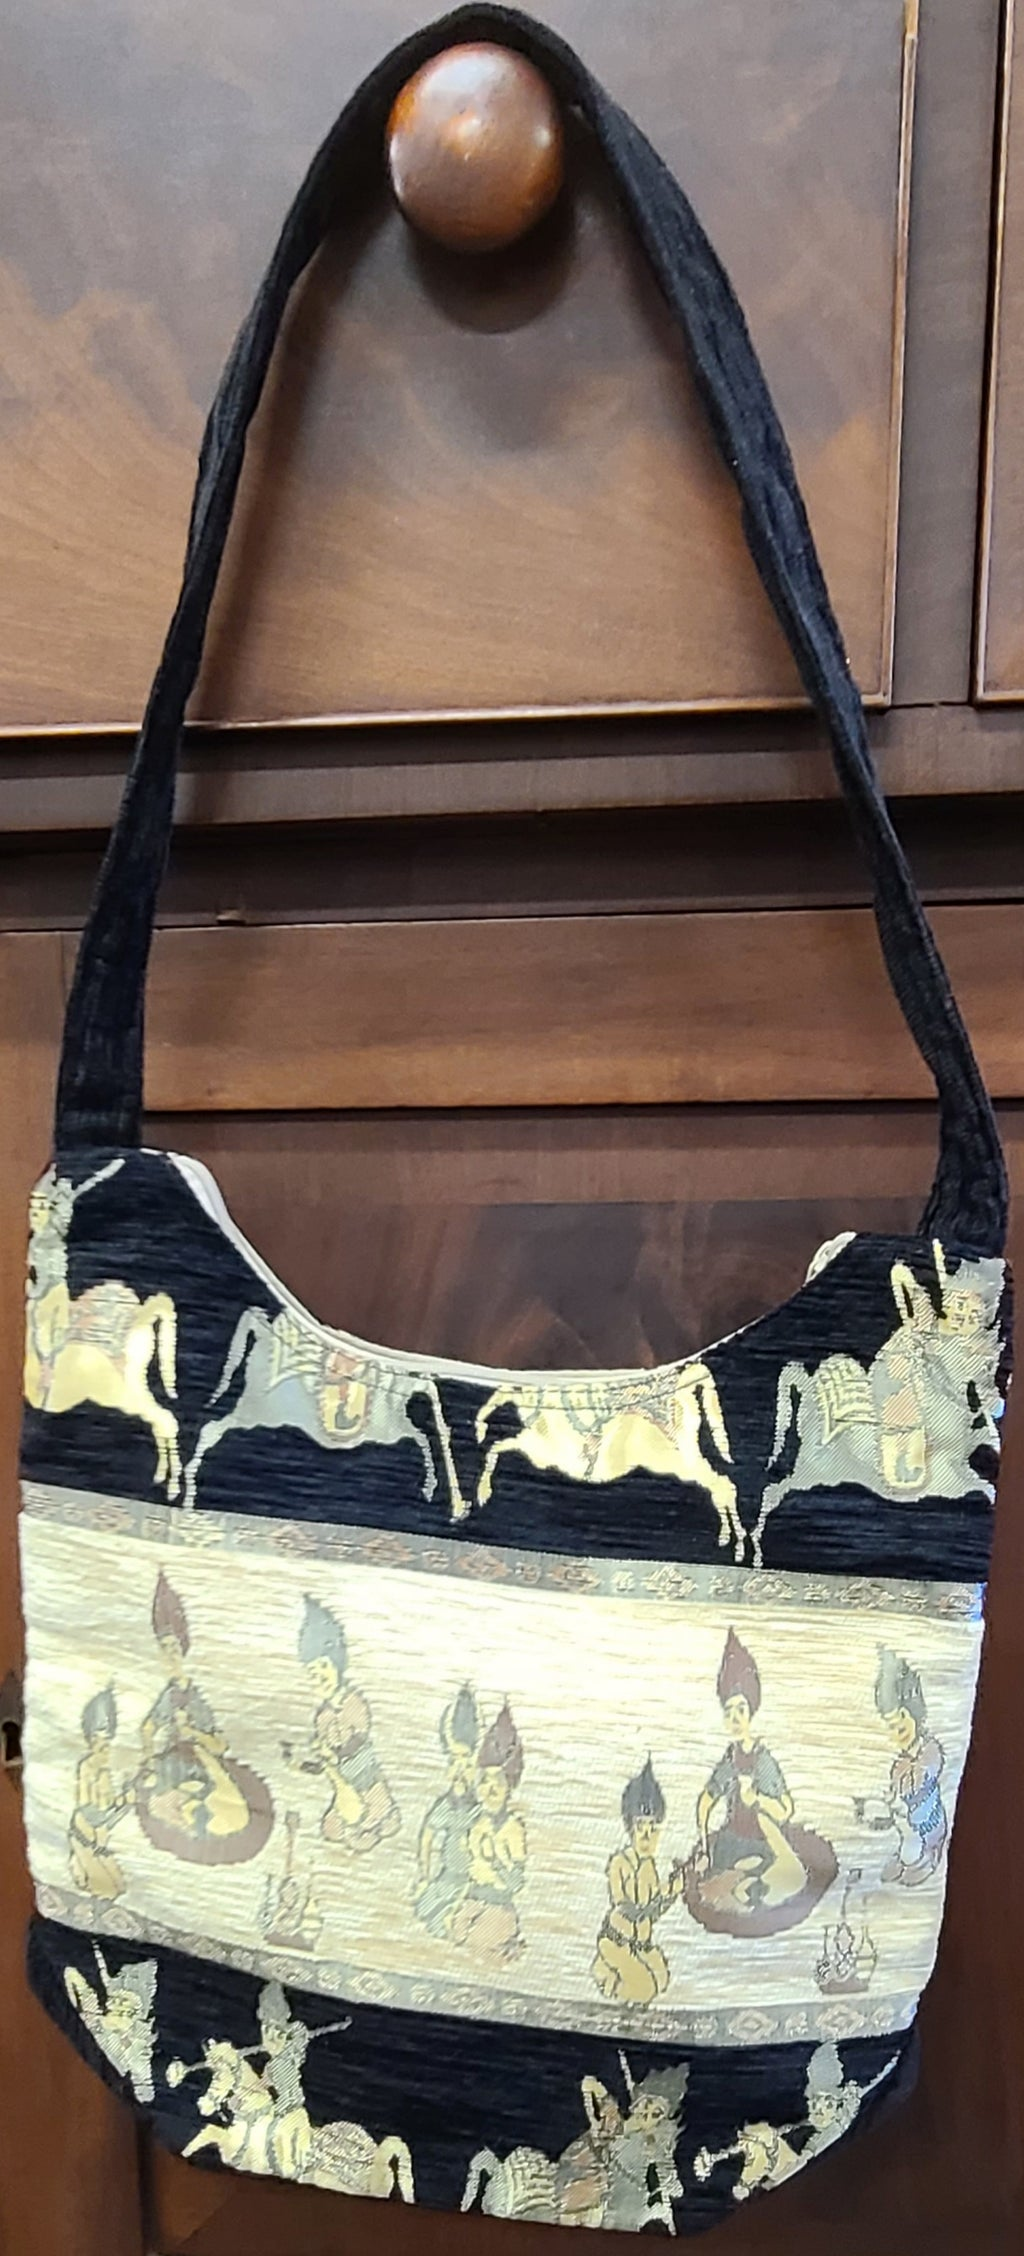 Turkish black and beige day bag purse